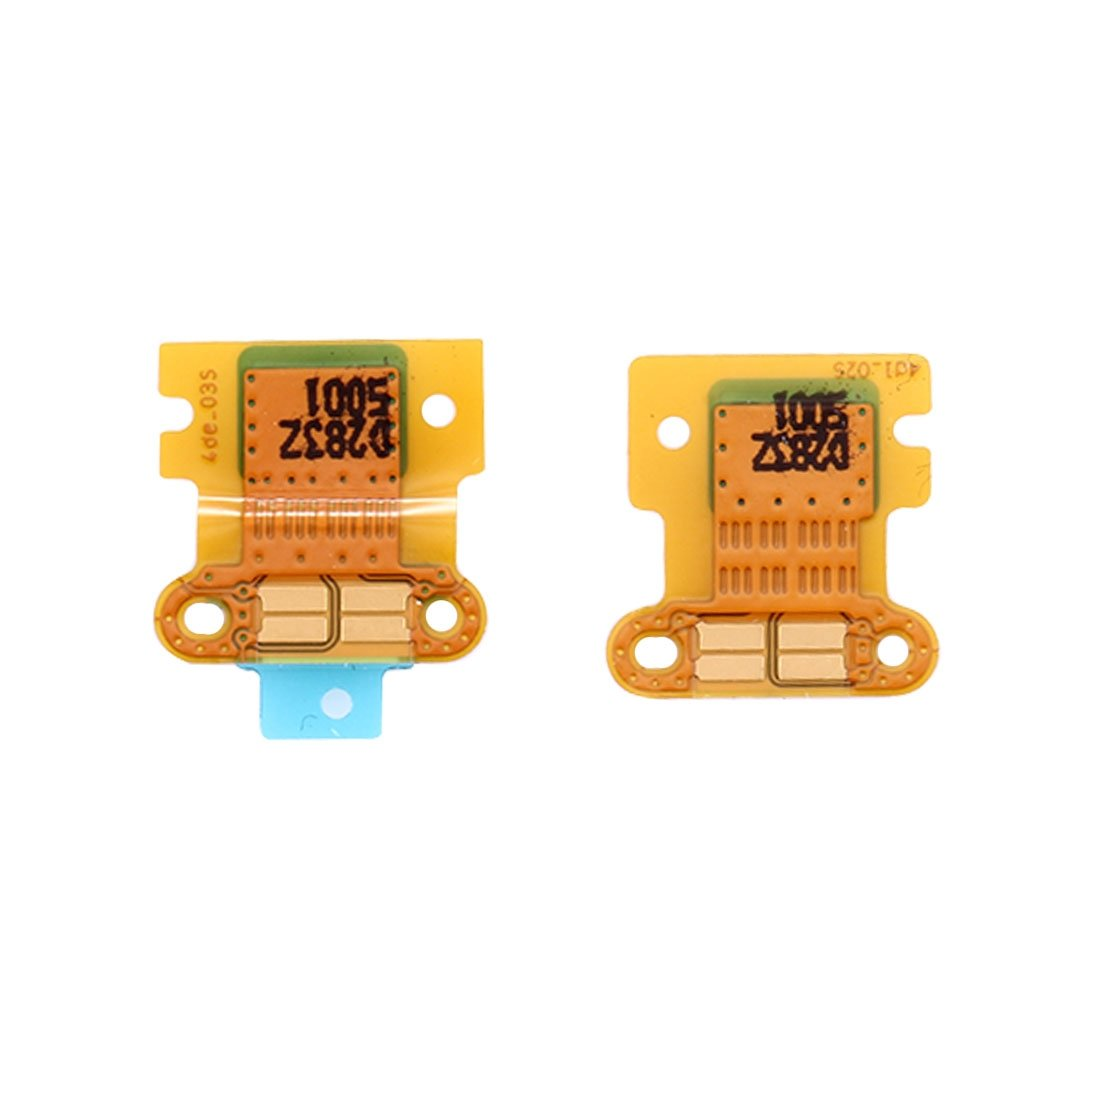 JUNXI Phone Microphone Boards for Nokia Lumia 930 Safe and Simple by JUNXI